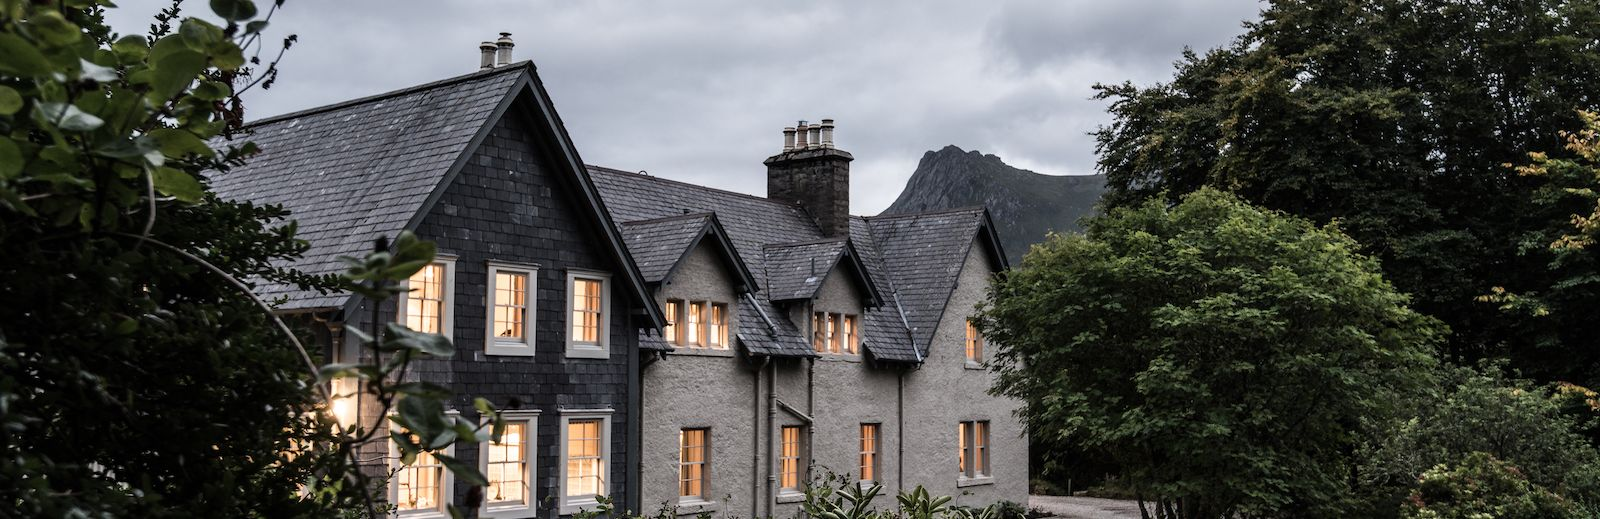 Kinloch Lodge in Sutherland Scotland is a boutique guesthouse and B&B